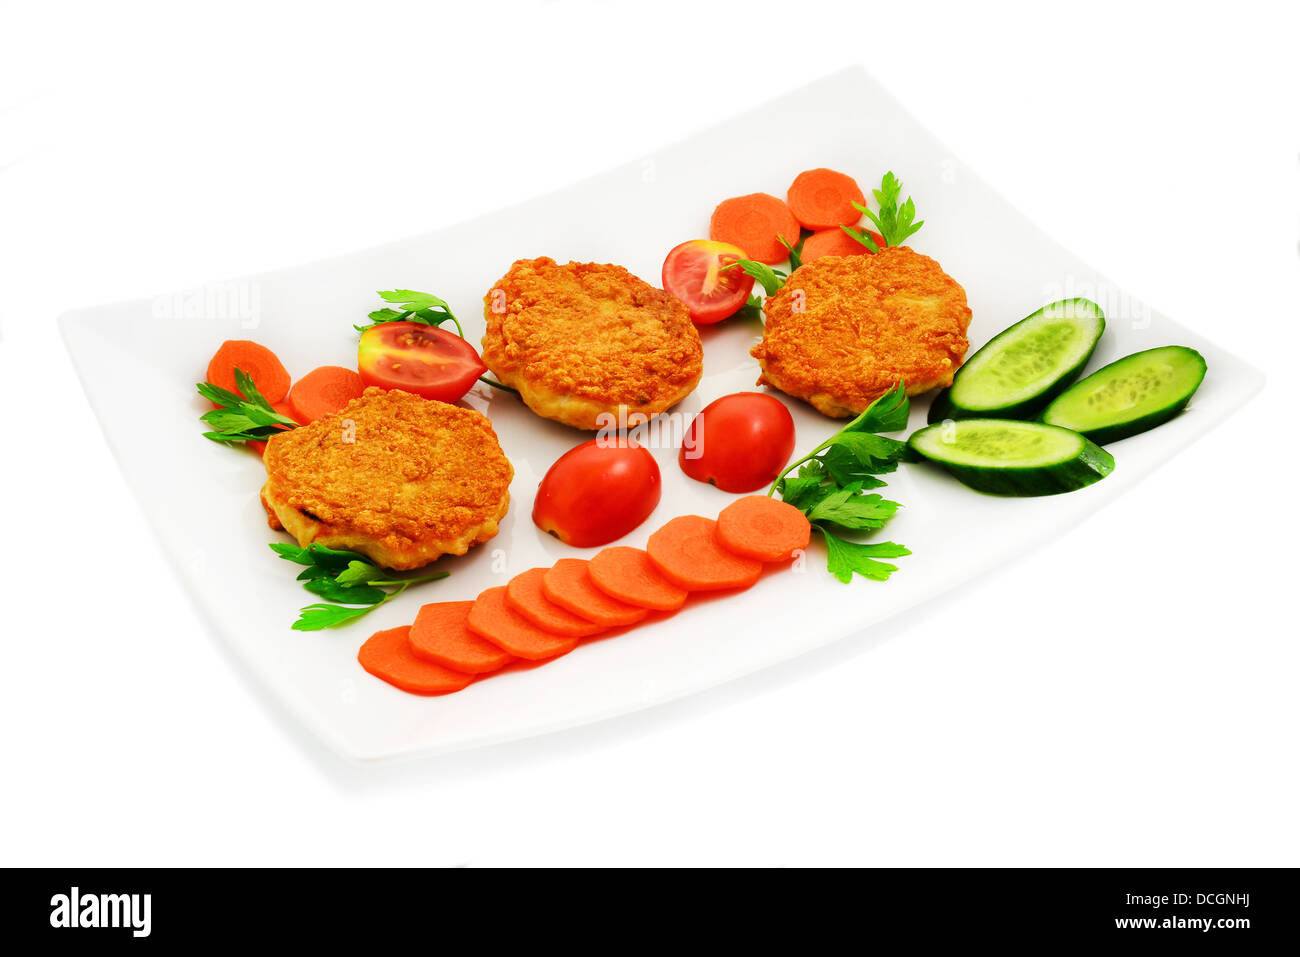 Chicken cutlets with vegetables. Dietary food. - Stock Image